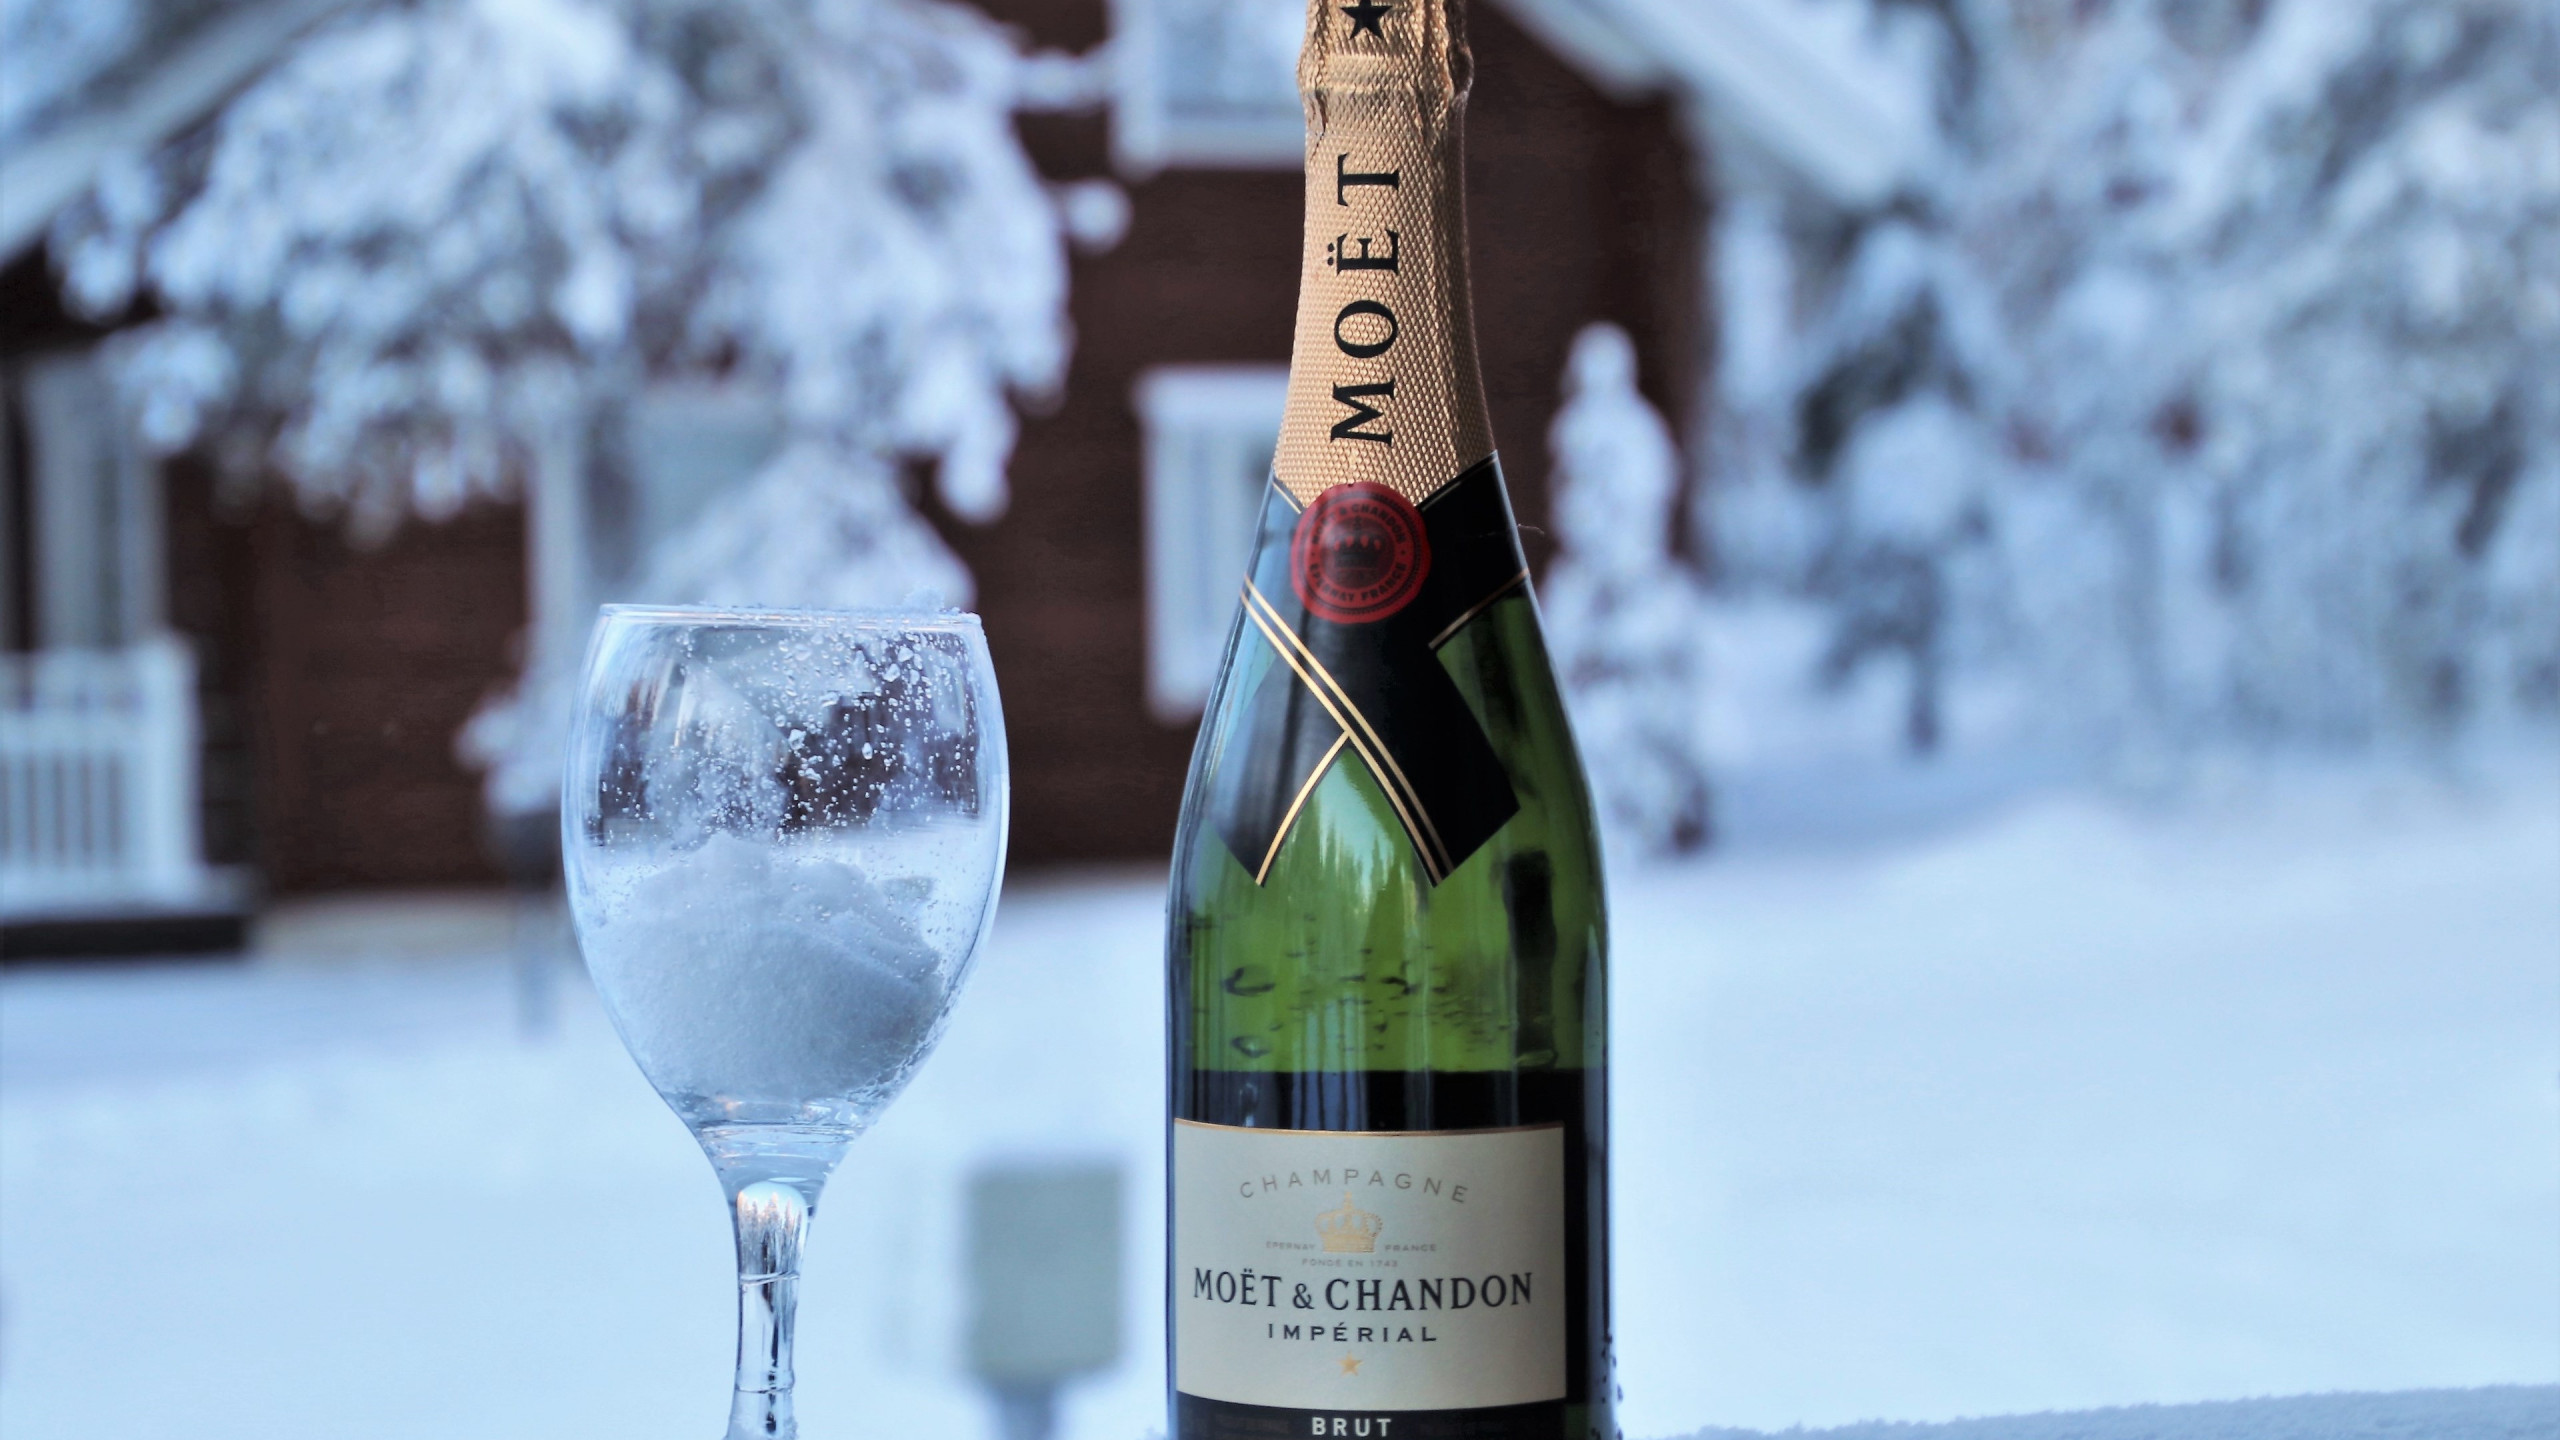 Moet champagne wallpaper 2560x1440